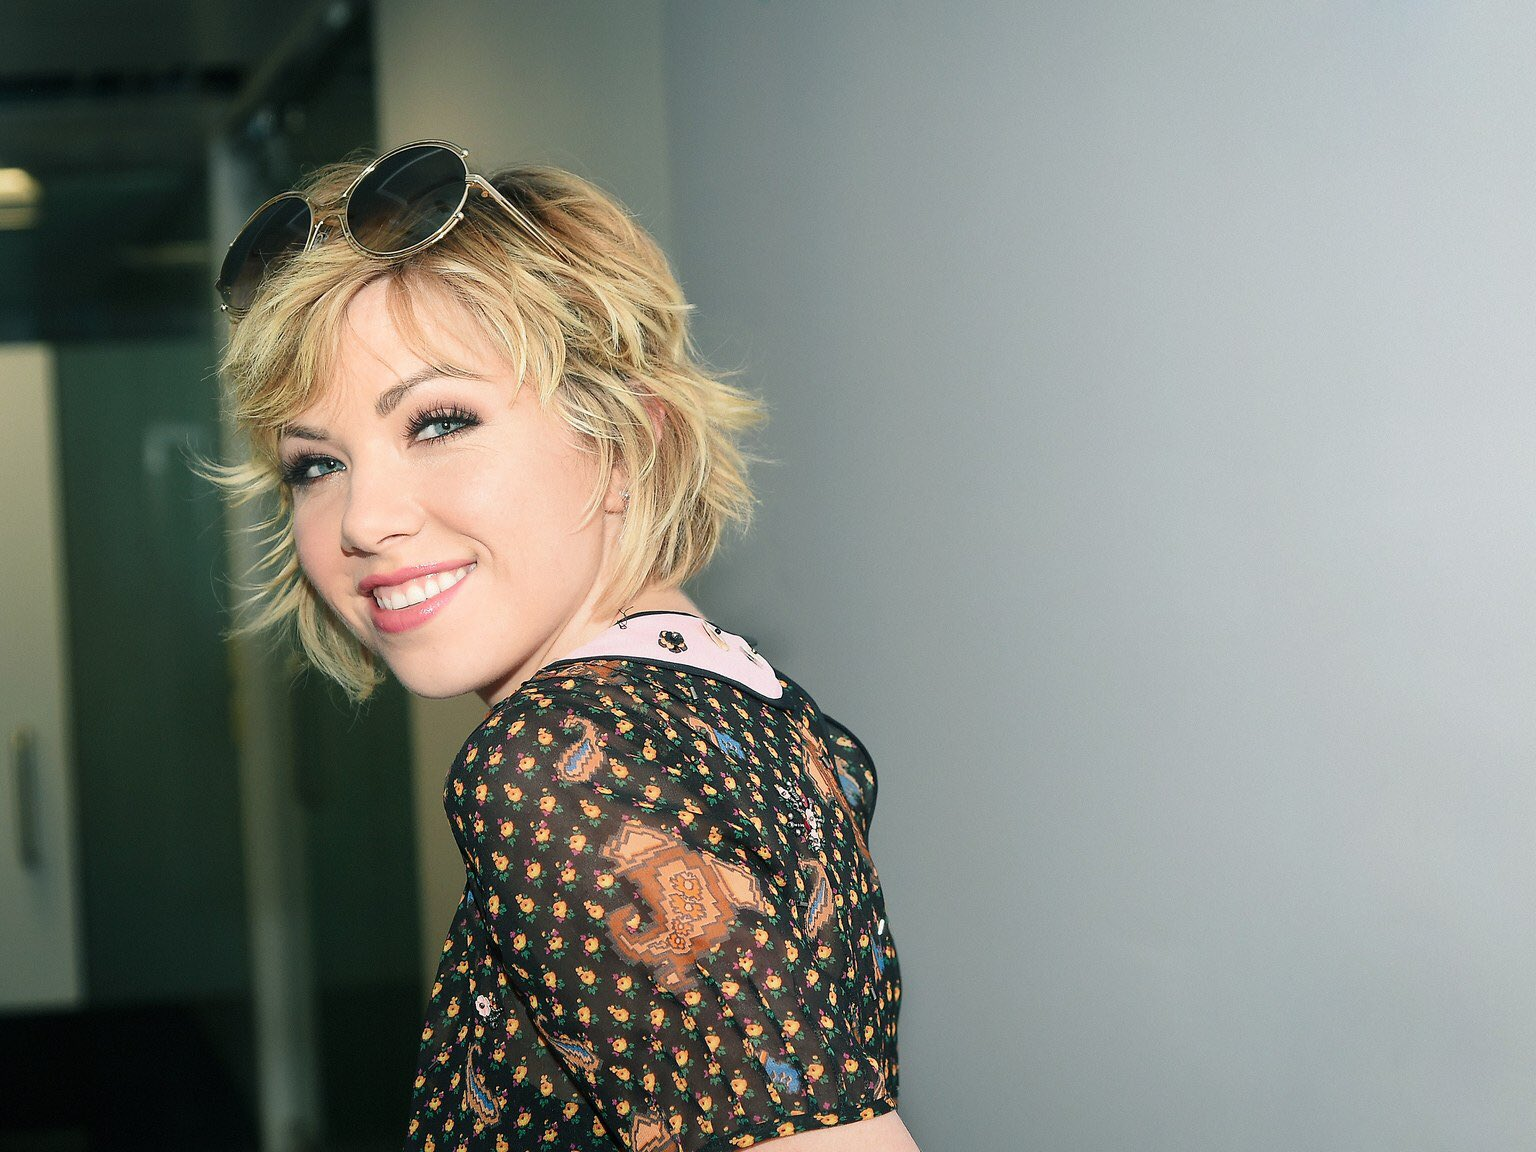 HAPPY BIRTHDAY TO THE ONLY POP STAR WHO MATTERS, CARLY RAE JEPSEN.